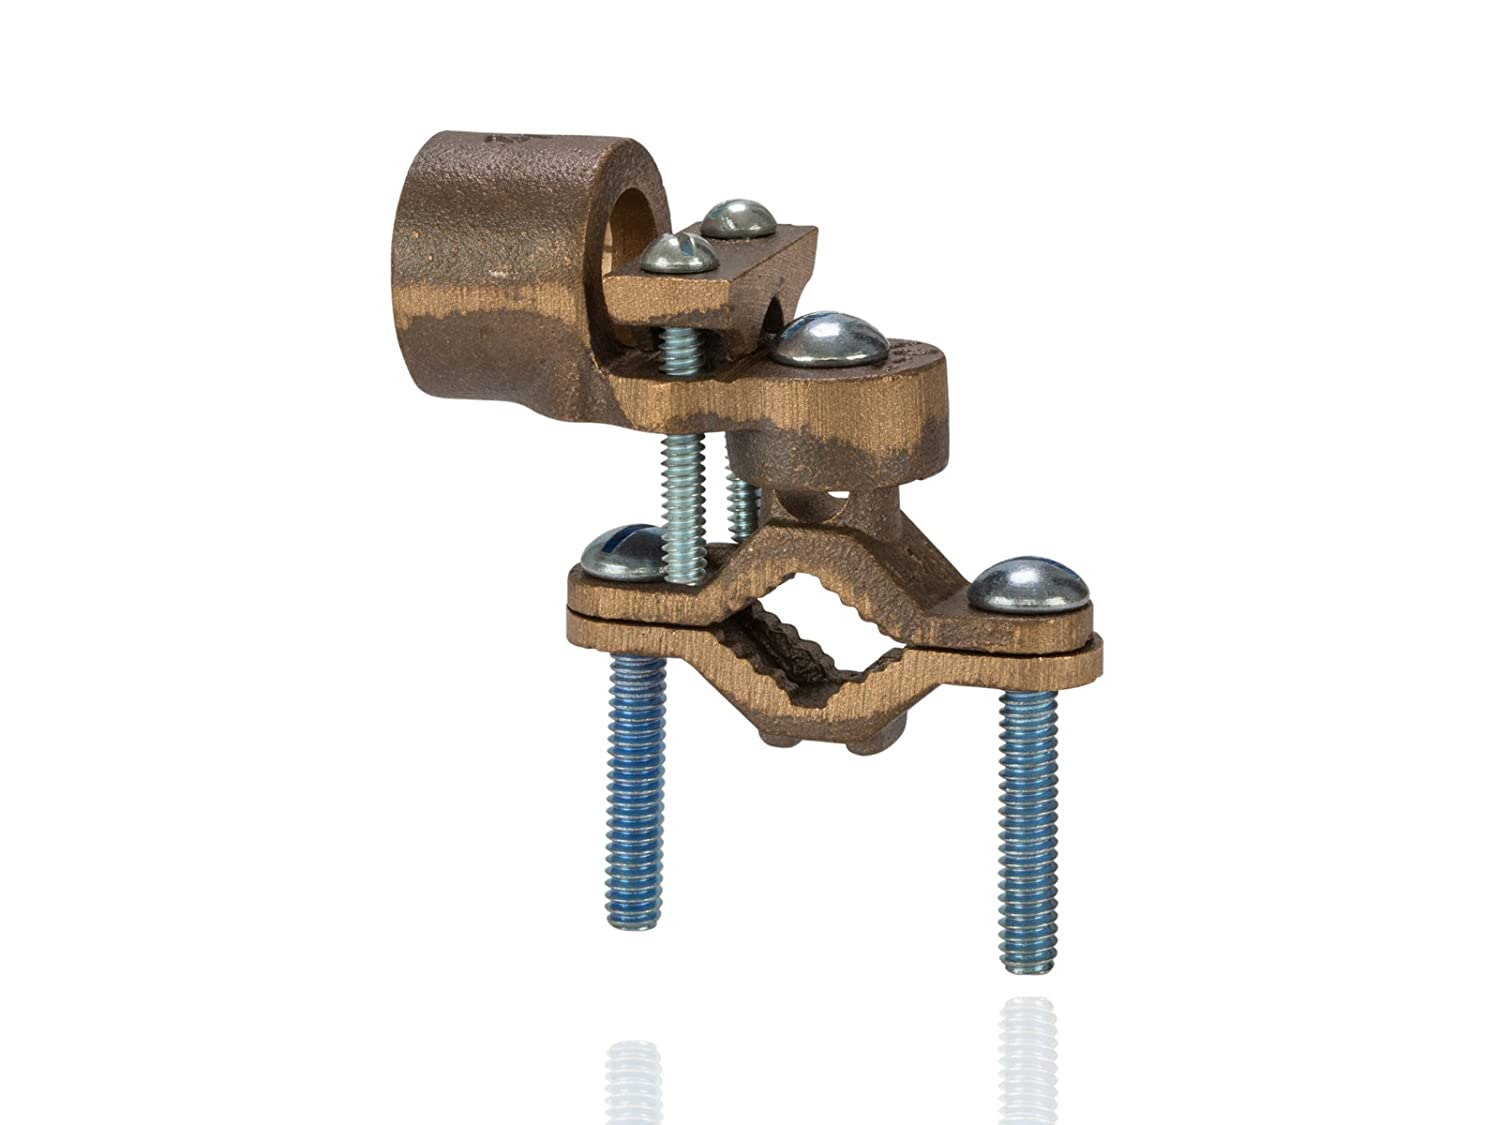 Bronze ground clamps with adapters 12 conduit hub size 12 bronze ground clamps with adapters 12 conduit hub size 12 1 water pipe size 10 sol 20 str ground wire range amazon tools home keyboard keysfo Choice Image